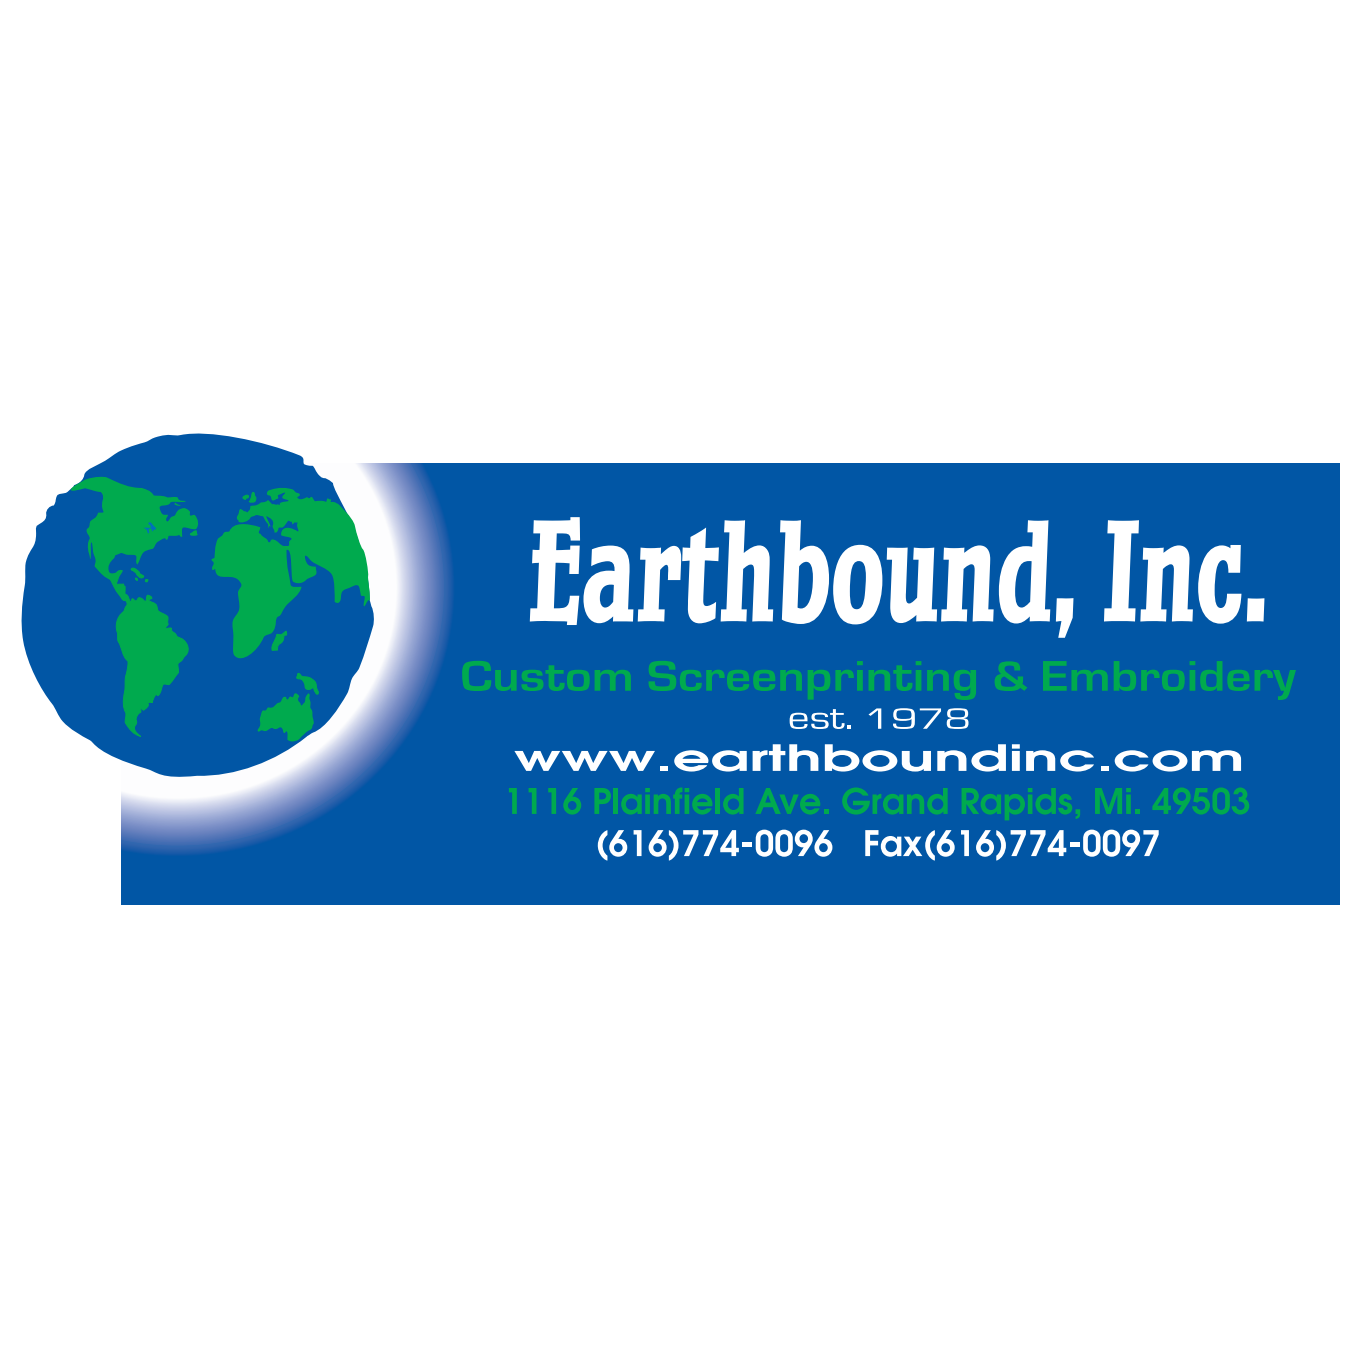 Earthbound, Inc.